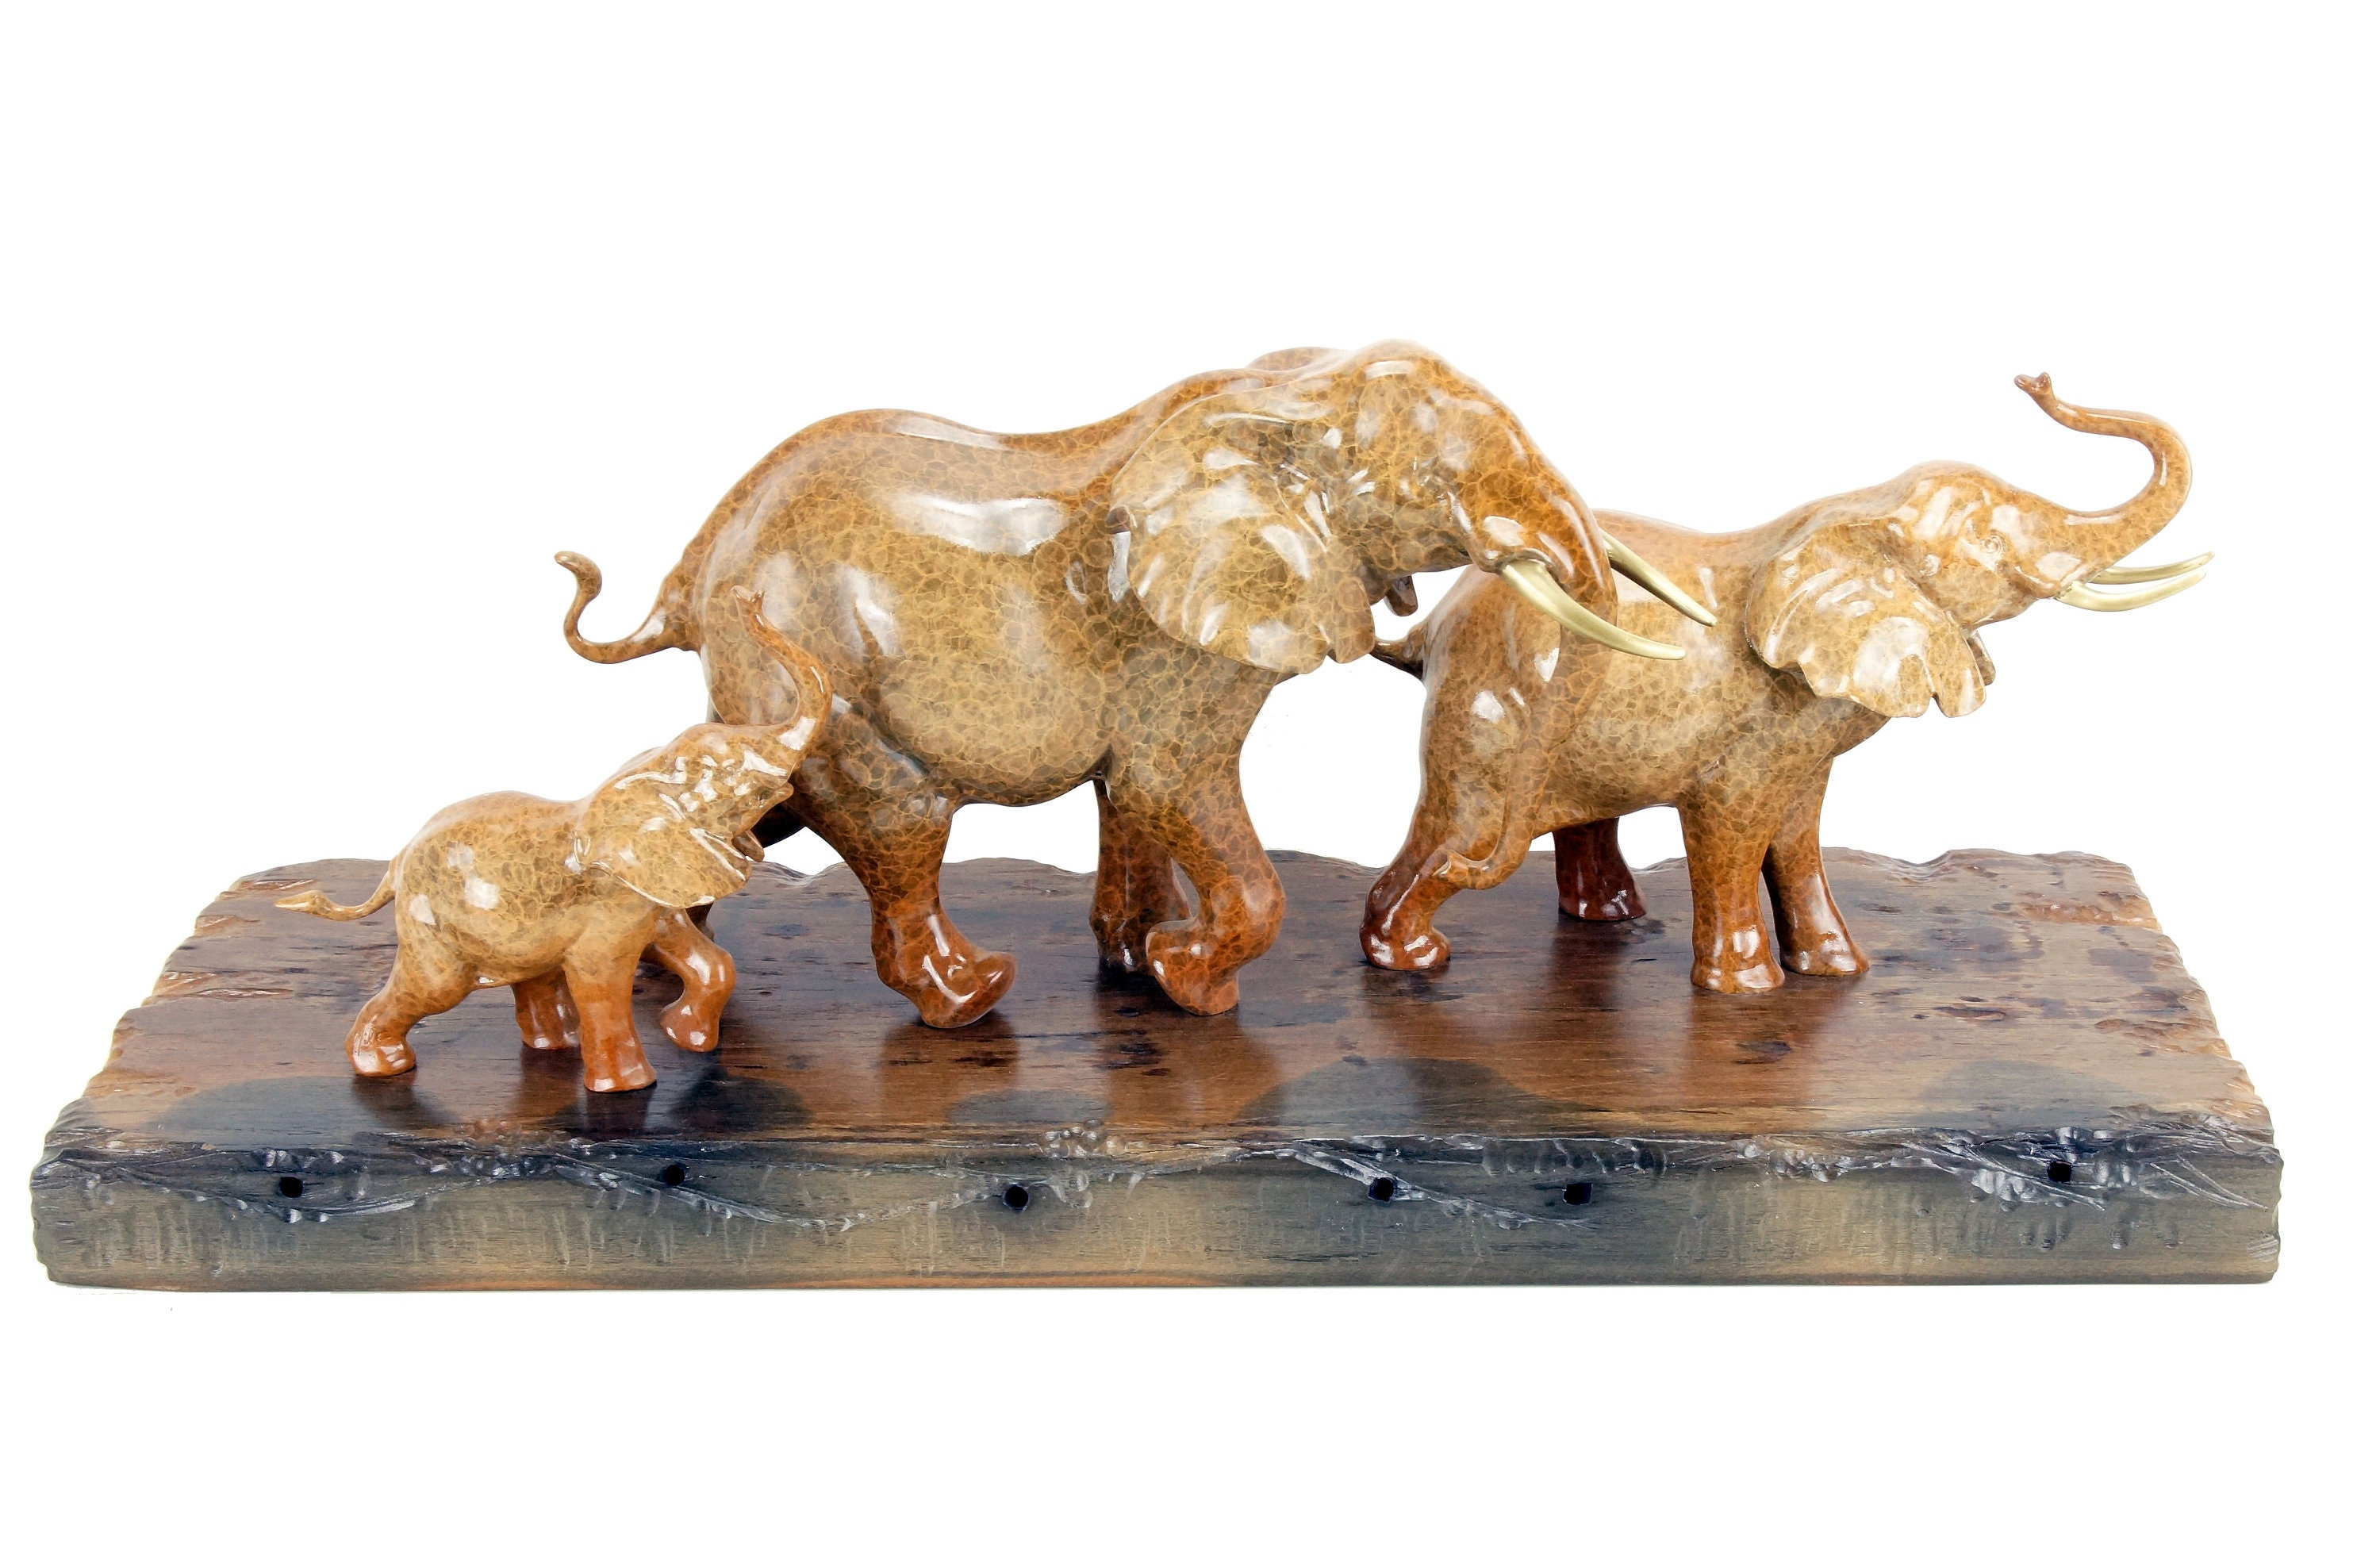 Plank 90 Cm.Bronze Family Of Elephants On Ship Plank Width 90 Cm Animal Figurine By Milo